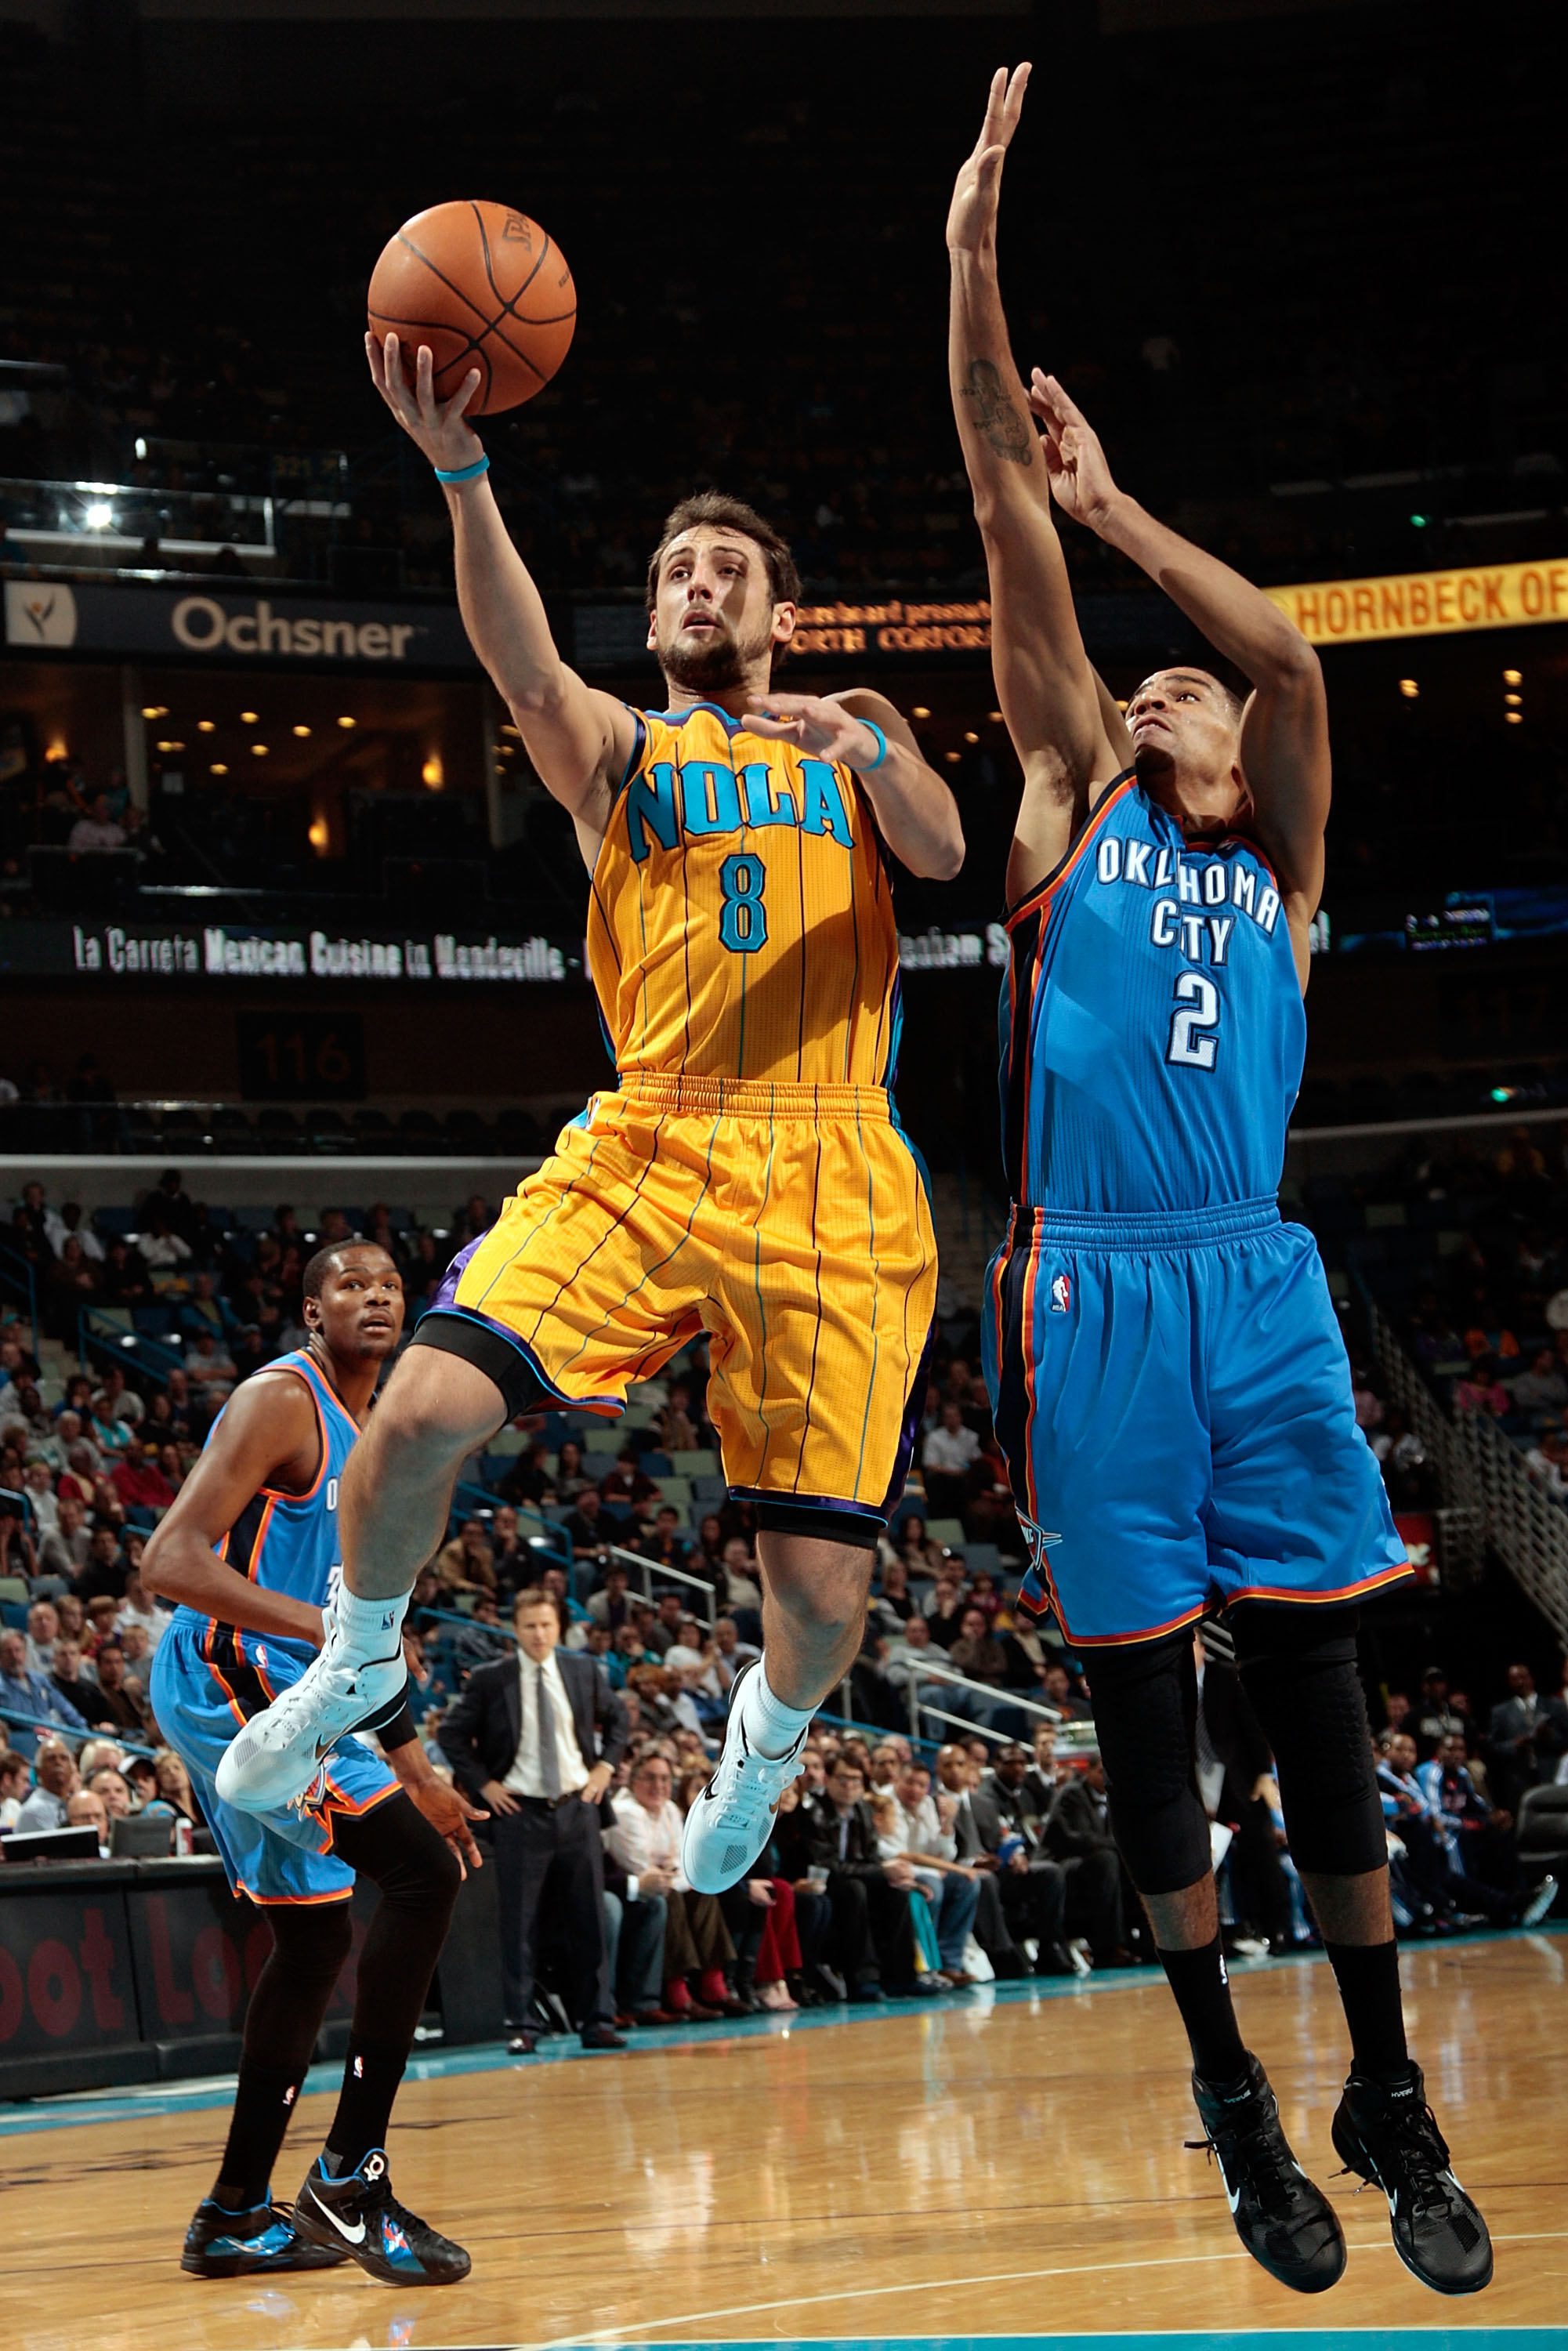 NEW ORLEANS, LA - DECEMBER 10:  Marco Belinelli #8 of the New Orleans Hornets makes a shot over Thabo Sefolosha #2 of the Oklahoma City Thunder at New Orleans Arena on December 10, 2010 in New Orleans, Louisiana.    NOTE TO USER: User expressly acknowledg